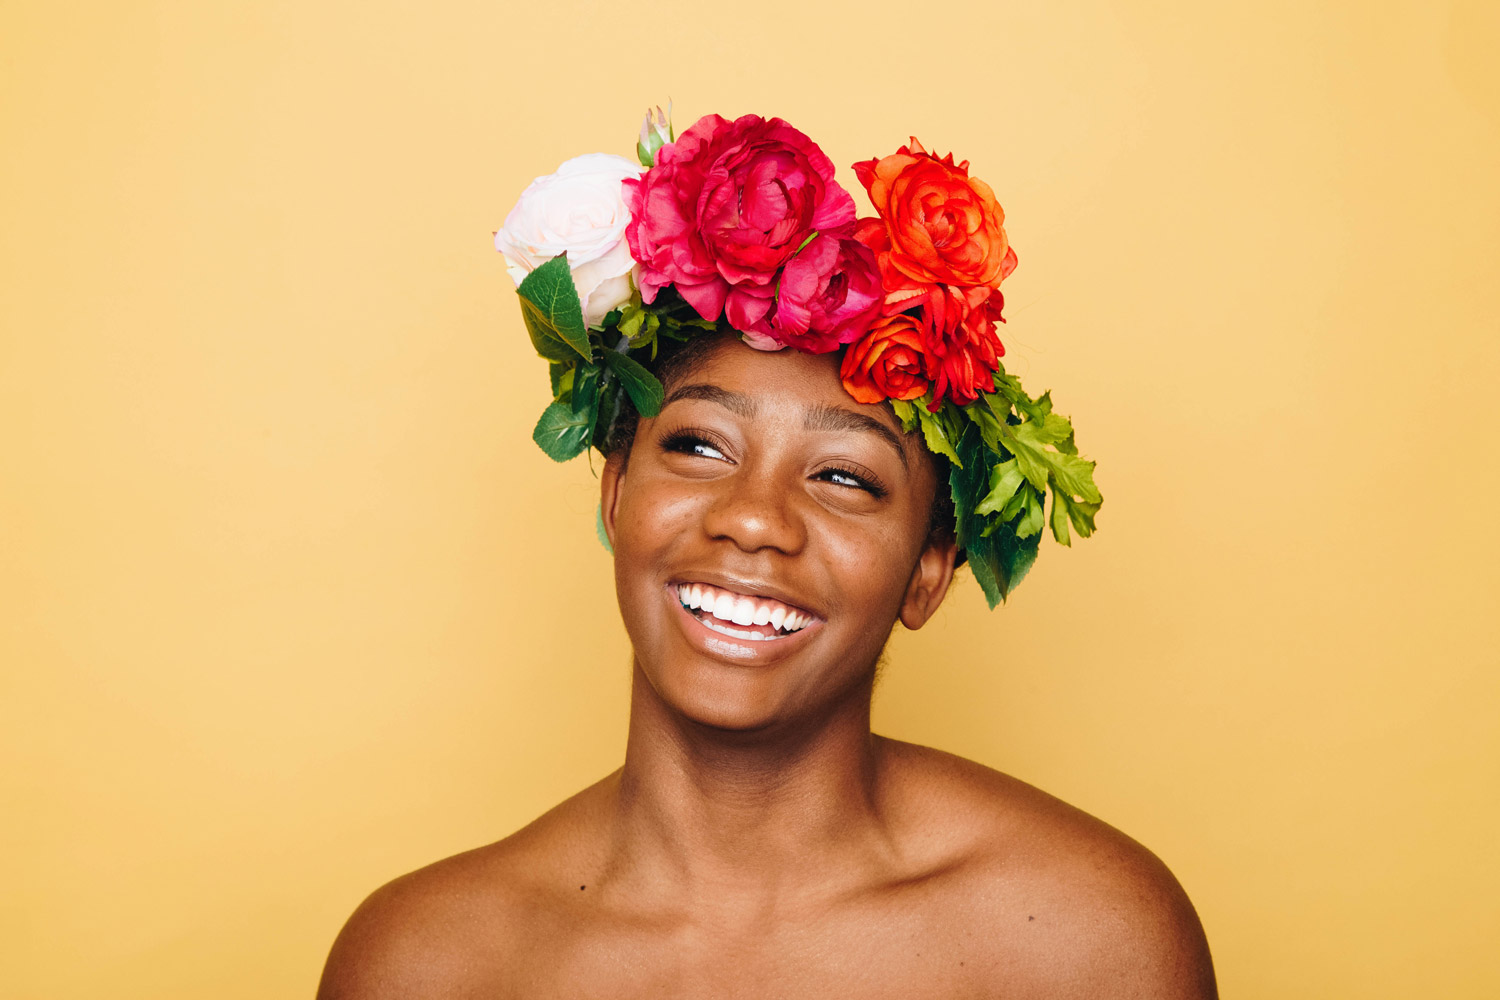 Happy woman with flowers on head confidence self-esteem